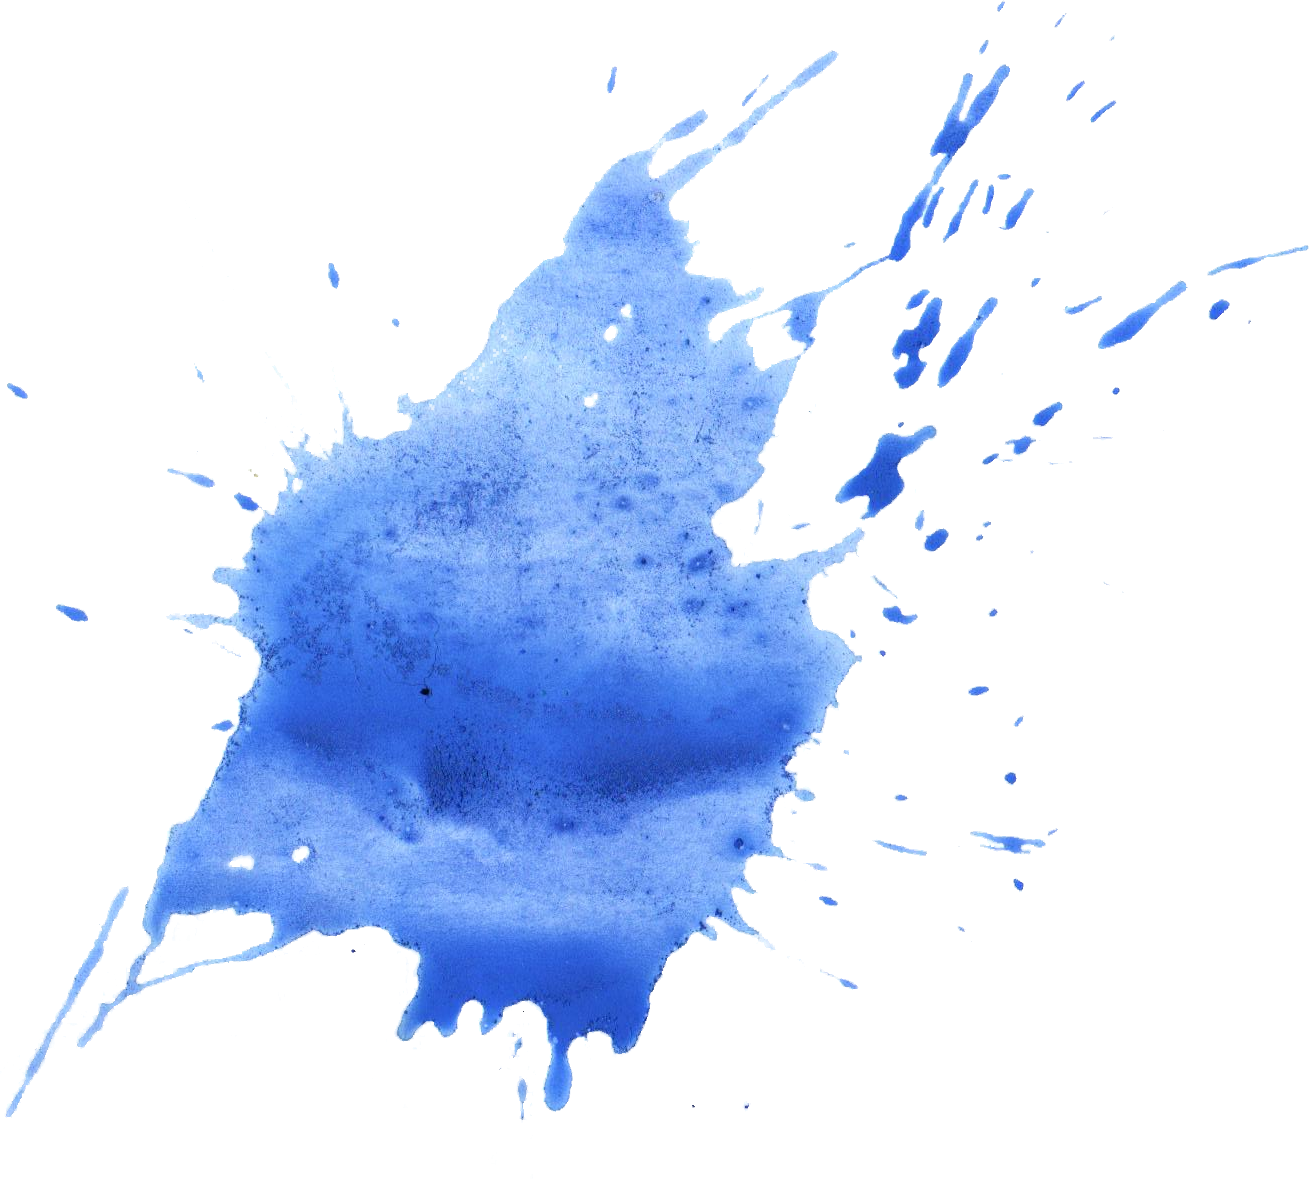 Water splat png. Blue watercolor splatter